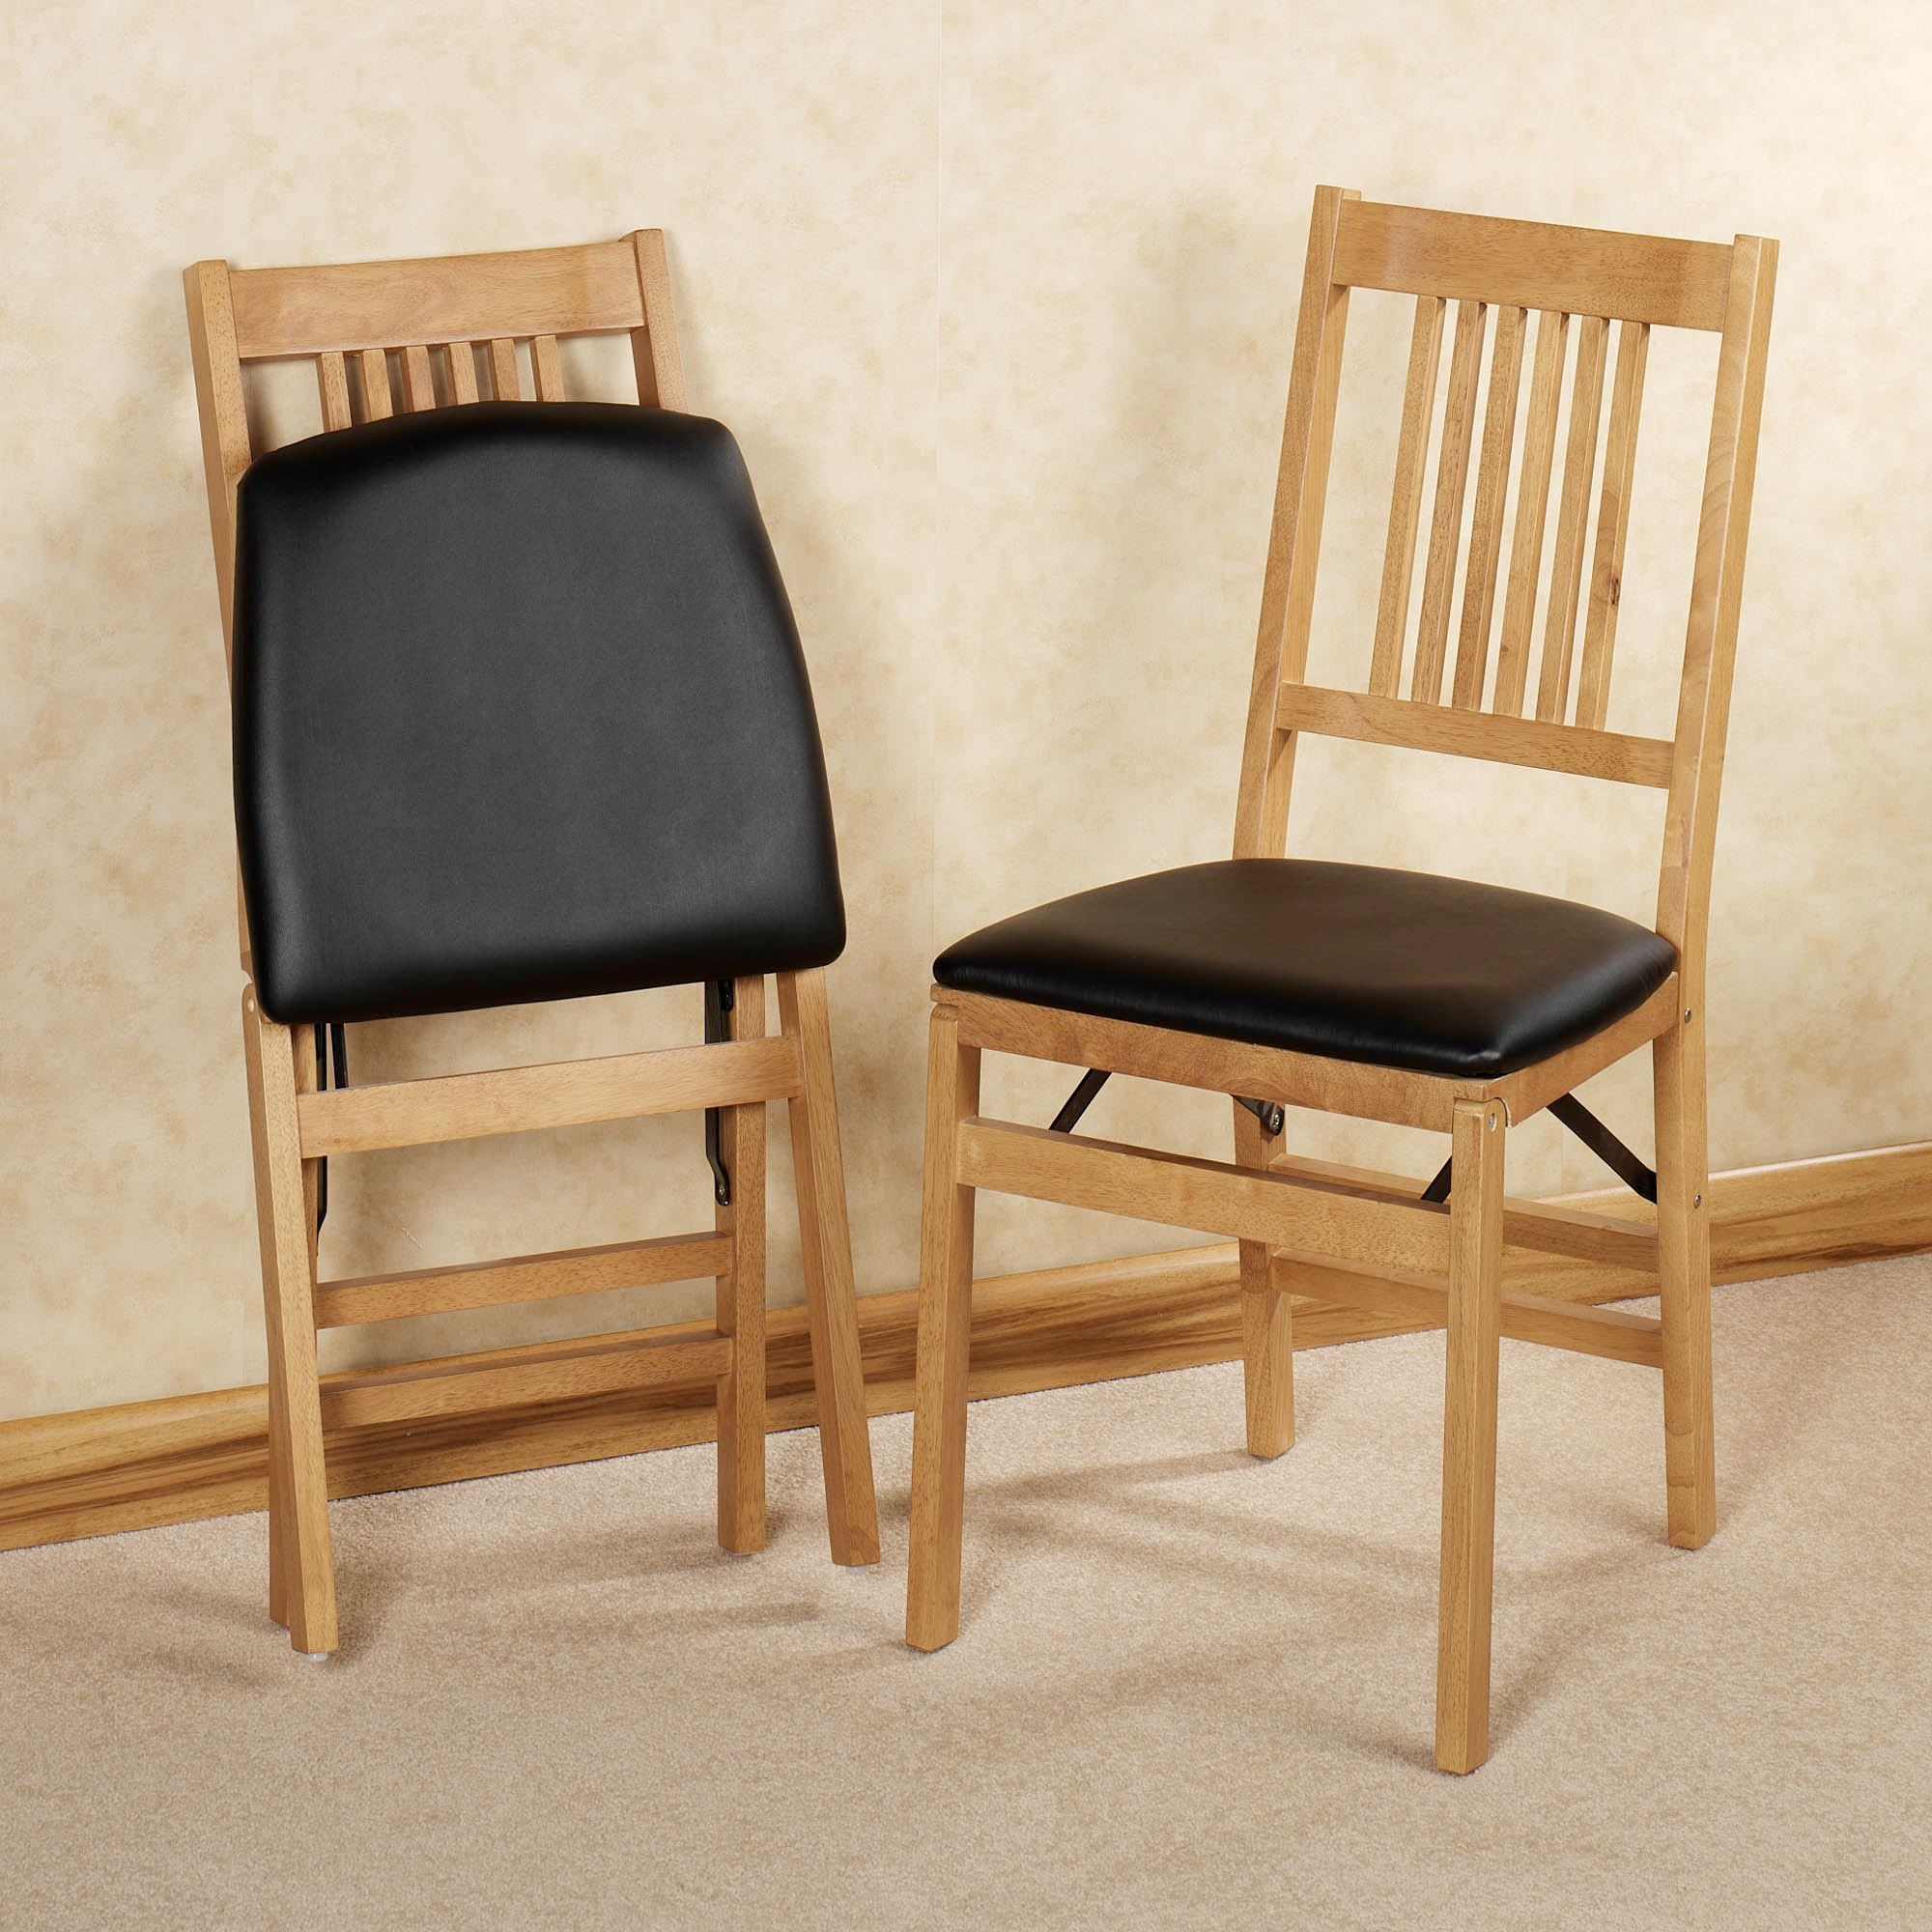 Stakmore Folding Chair Mission Folding Chair Pair